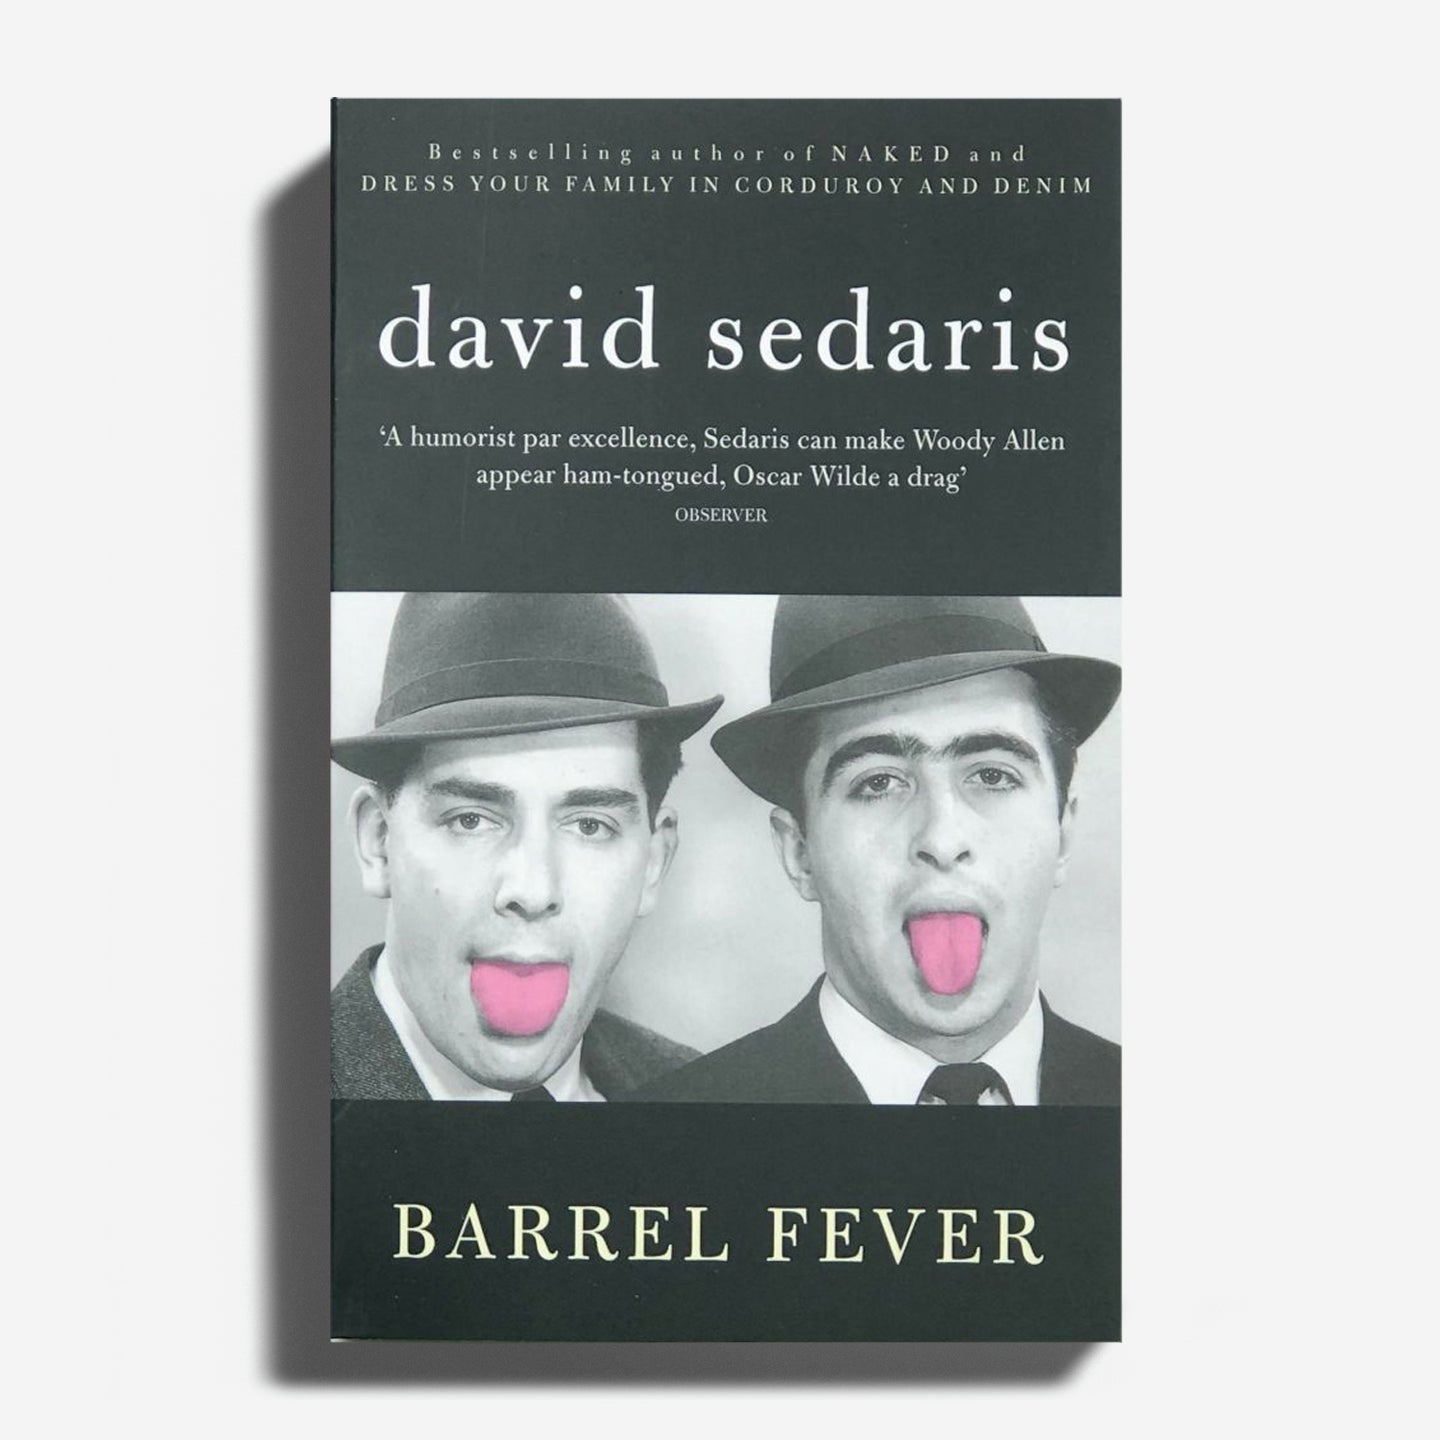 DAVID SEDARIS | Barrel fever: stories and essays